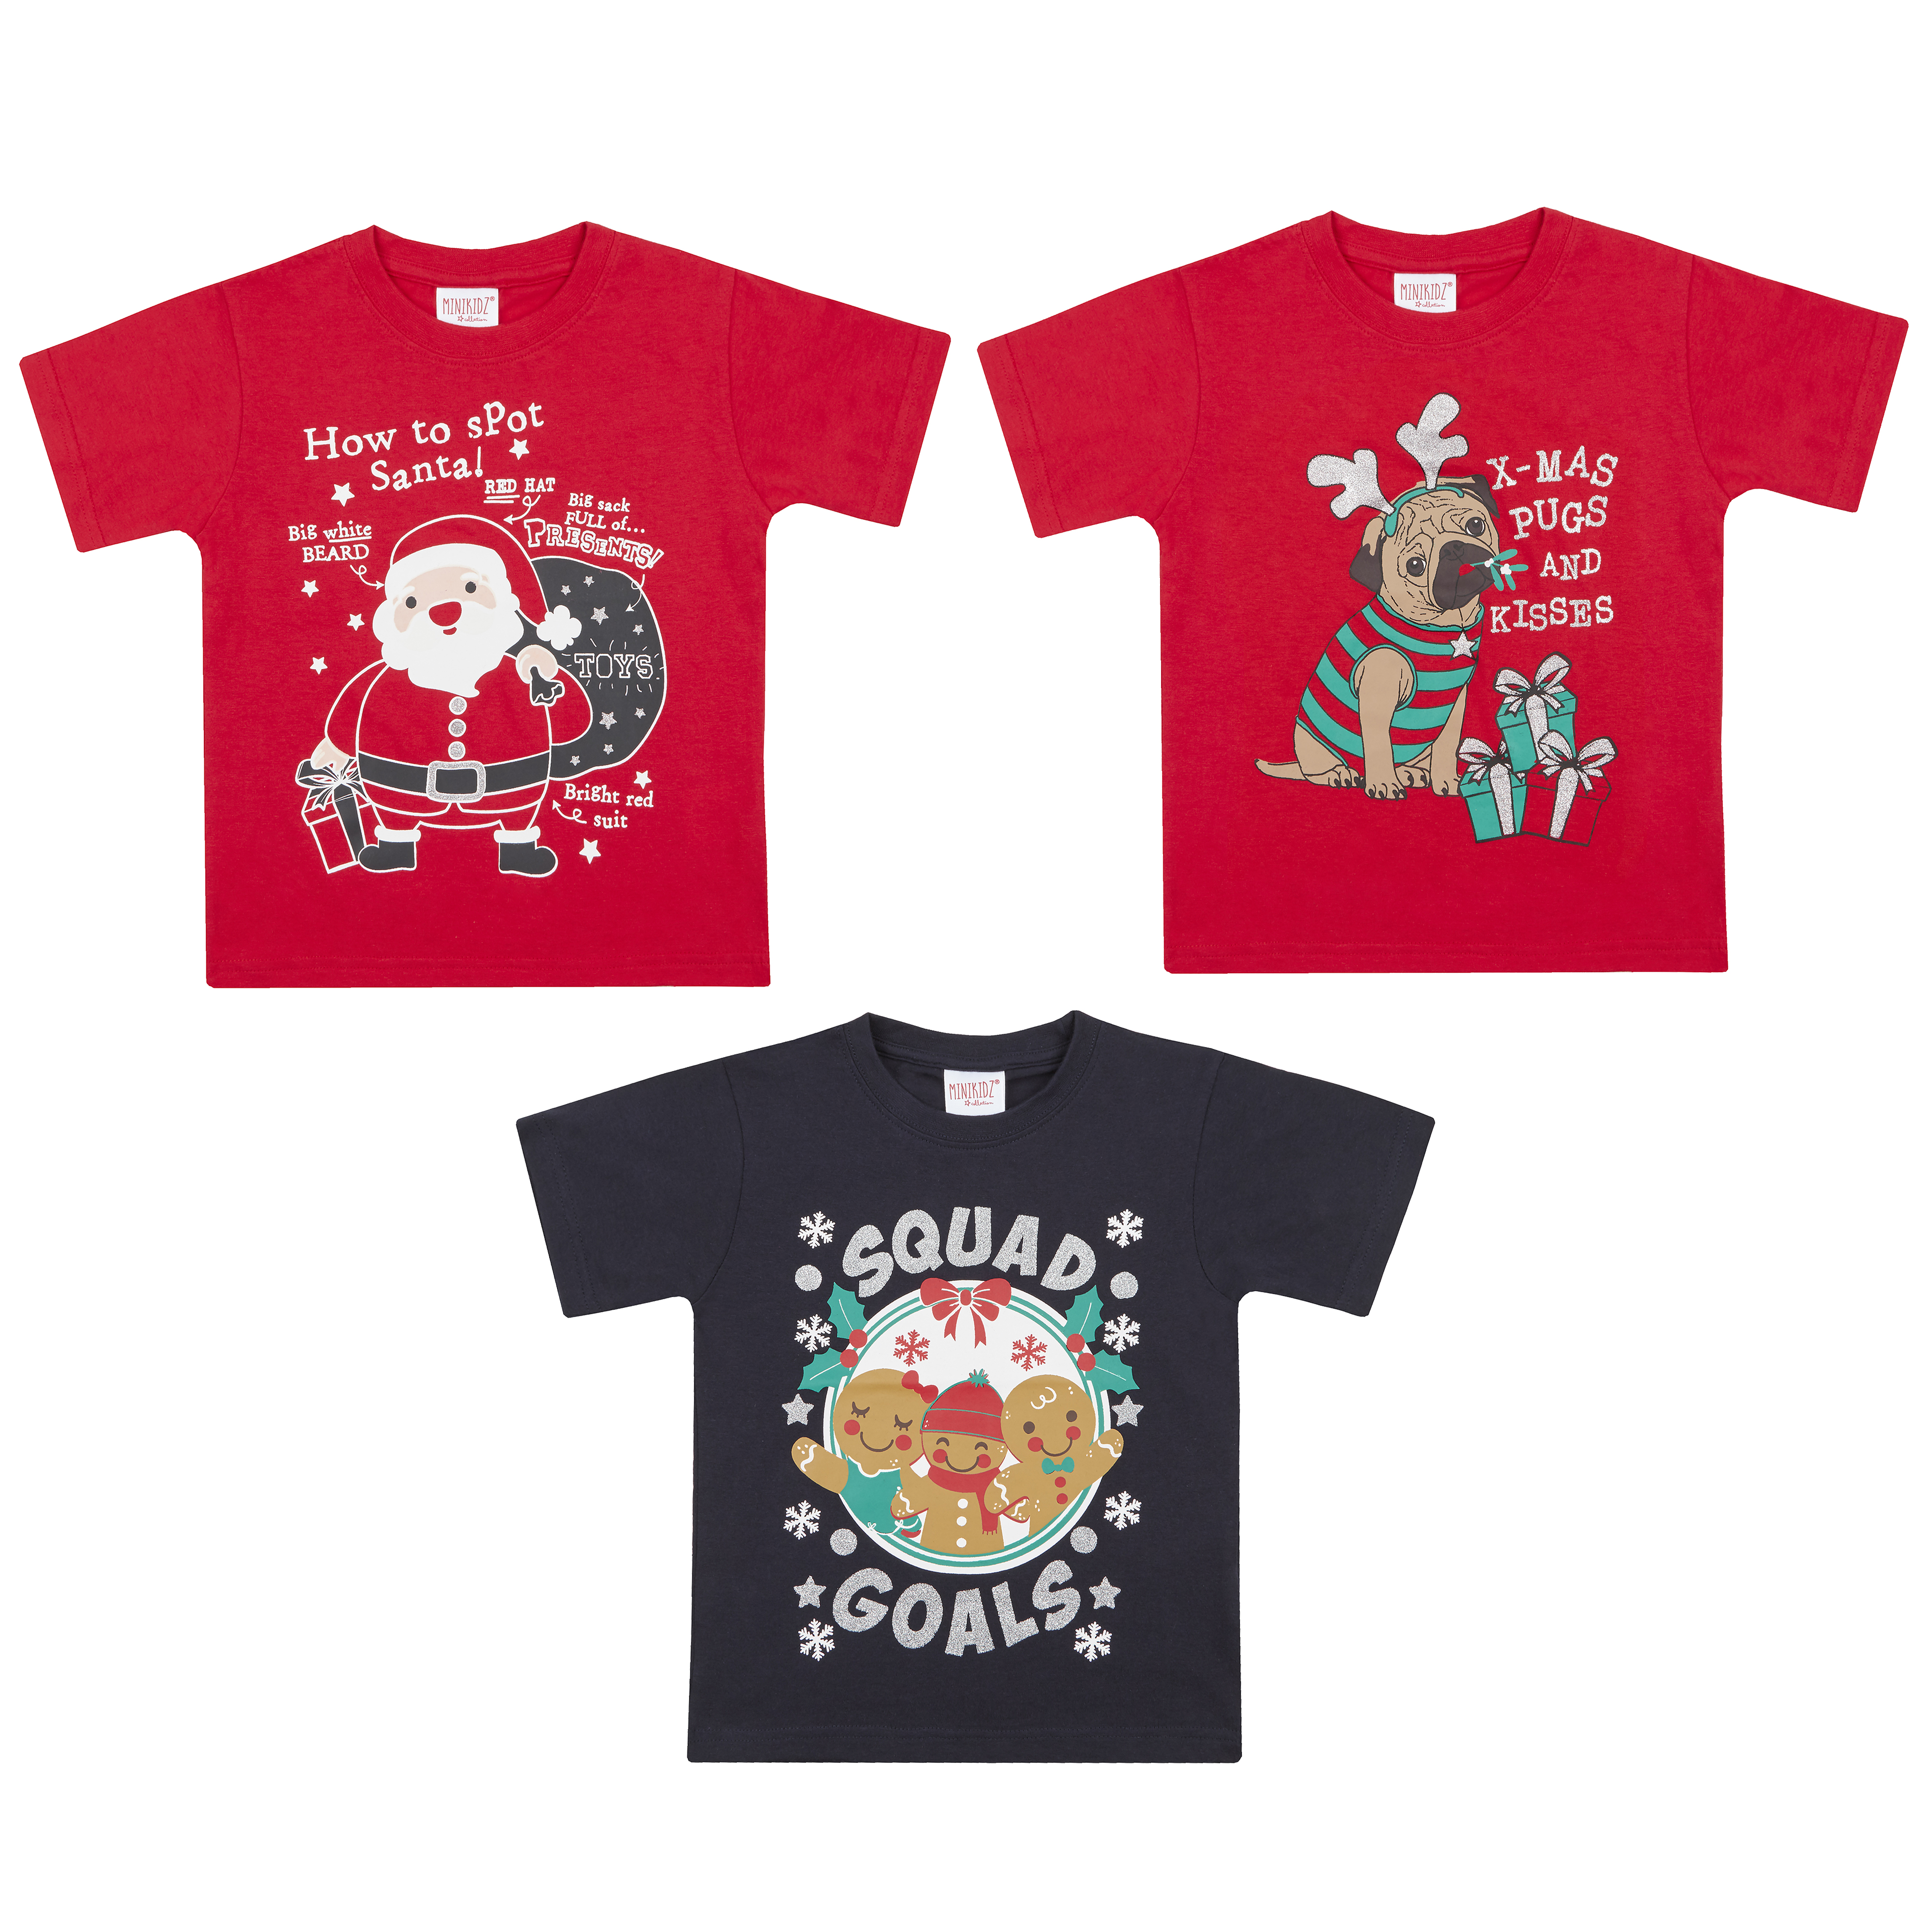 ccfe1f18 Infant Kids Children's Christmas T-shirt Xmas Novelty Cotton Girl Boy Top  Santa